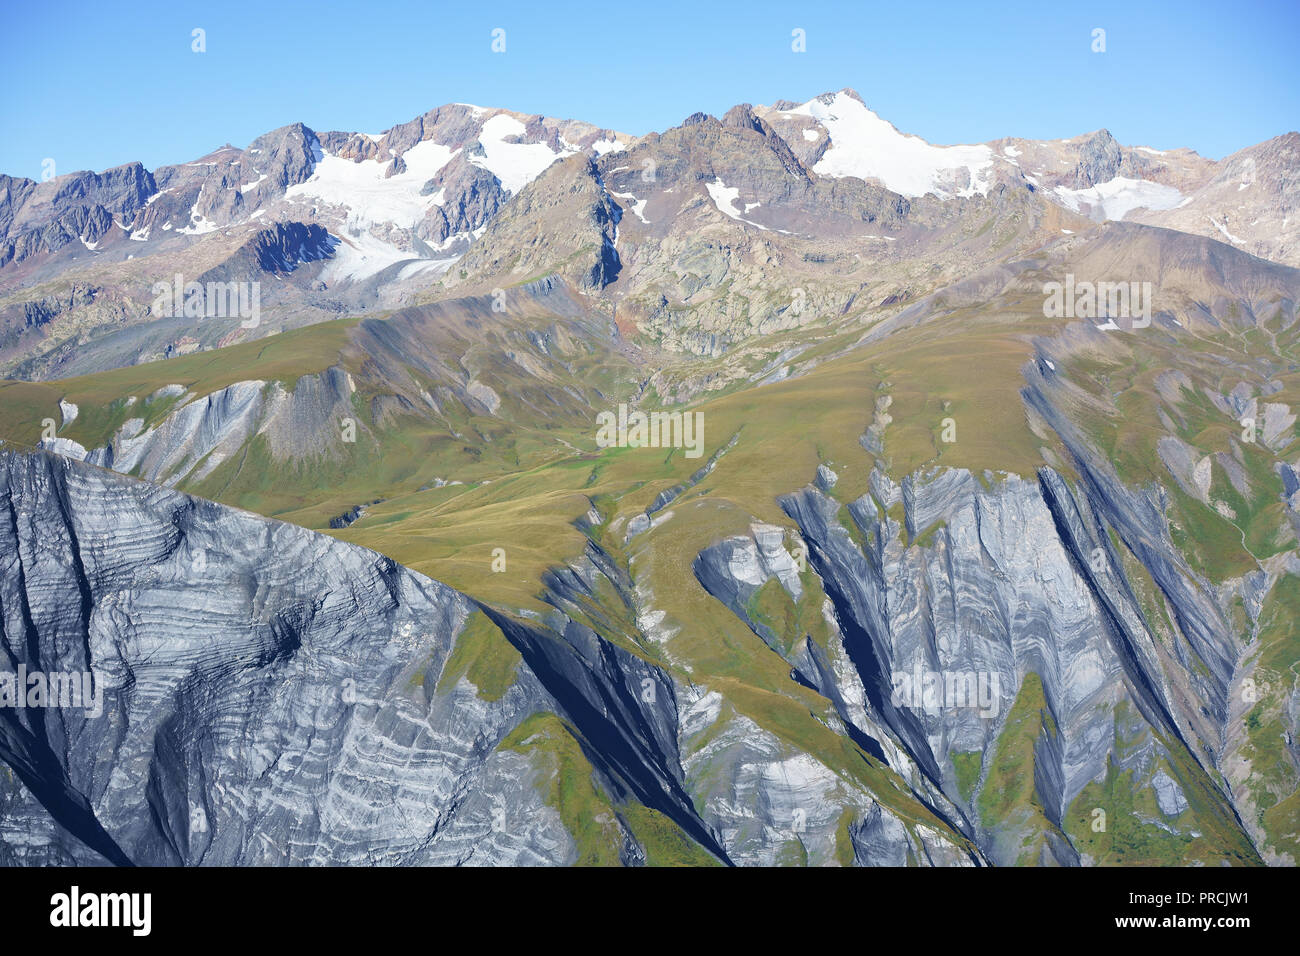 LES GRANDES ROUSSES MASSIF WHICH RISES TO 3465 METERS AT PIC BAYLE (aerial view from the east). Auvergne-Rhone-Alpes, France. - Stock Image